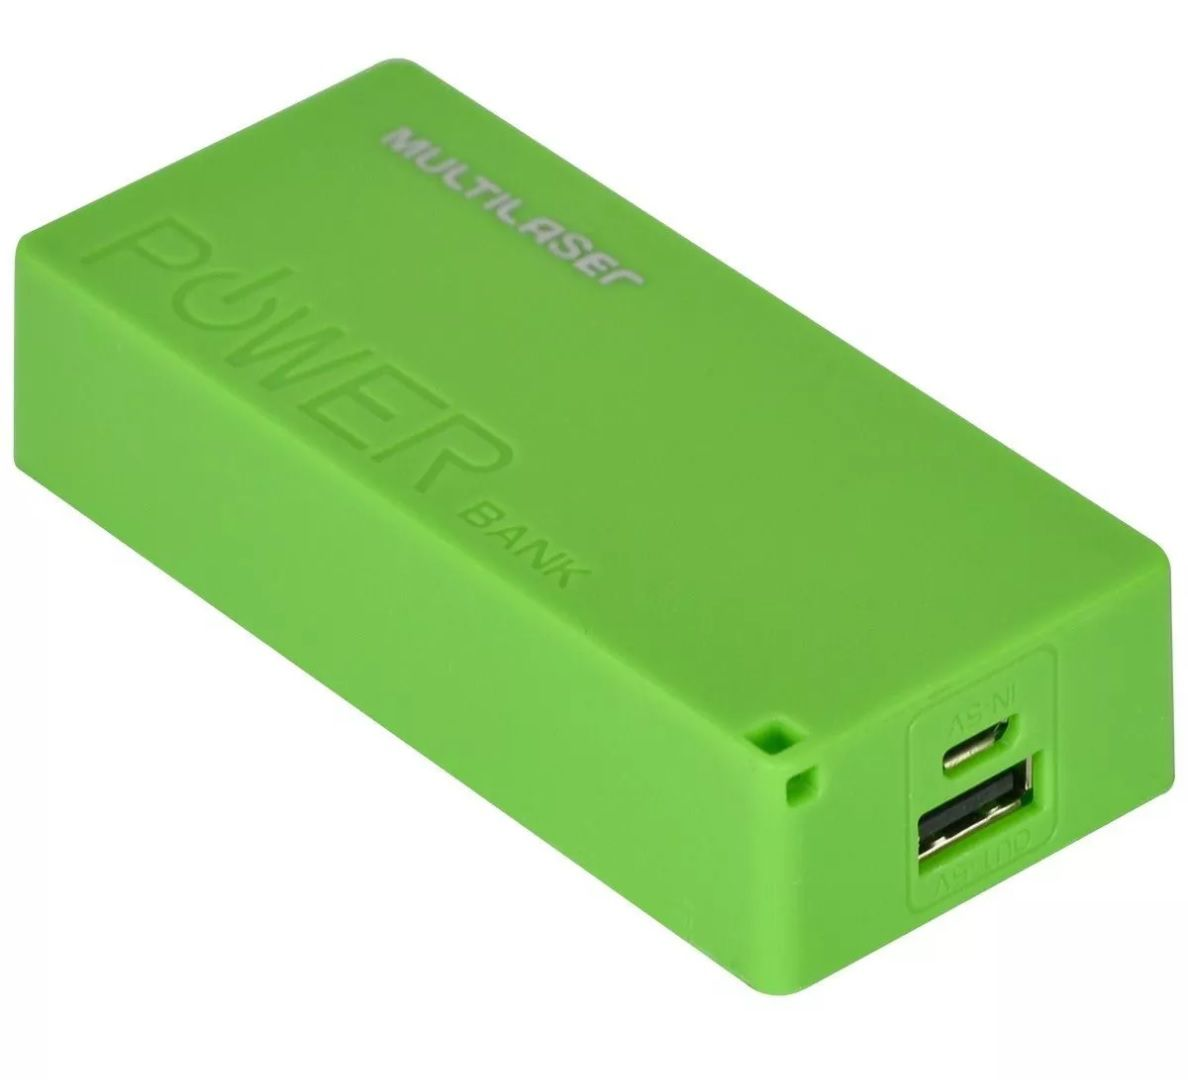 CARREGADOR PORTÁTIL POWER BANK 4000mAh ULTRA RÁPIDO - MULTILASER - CB097